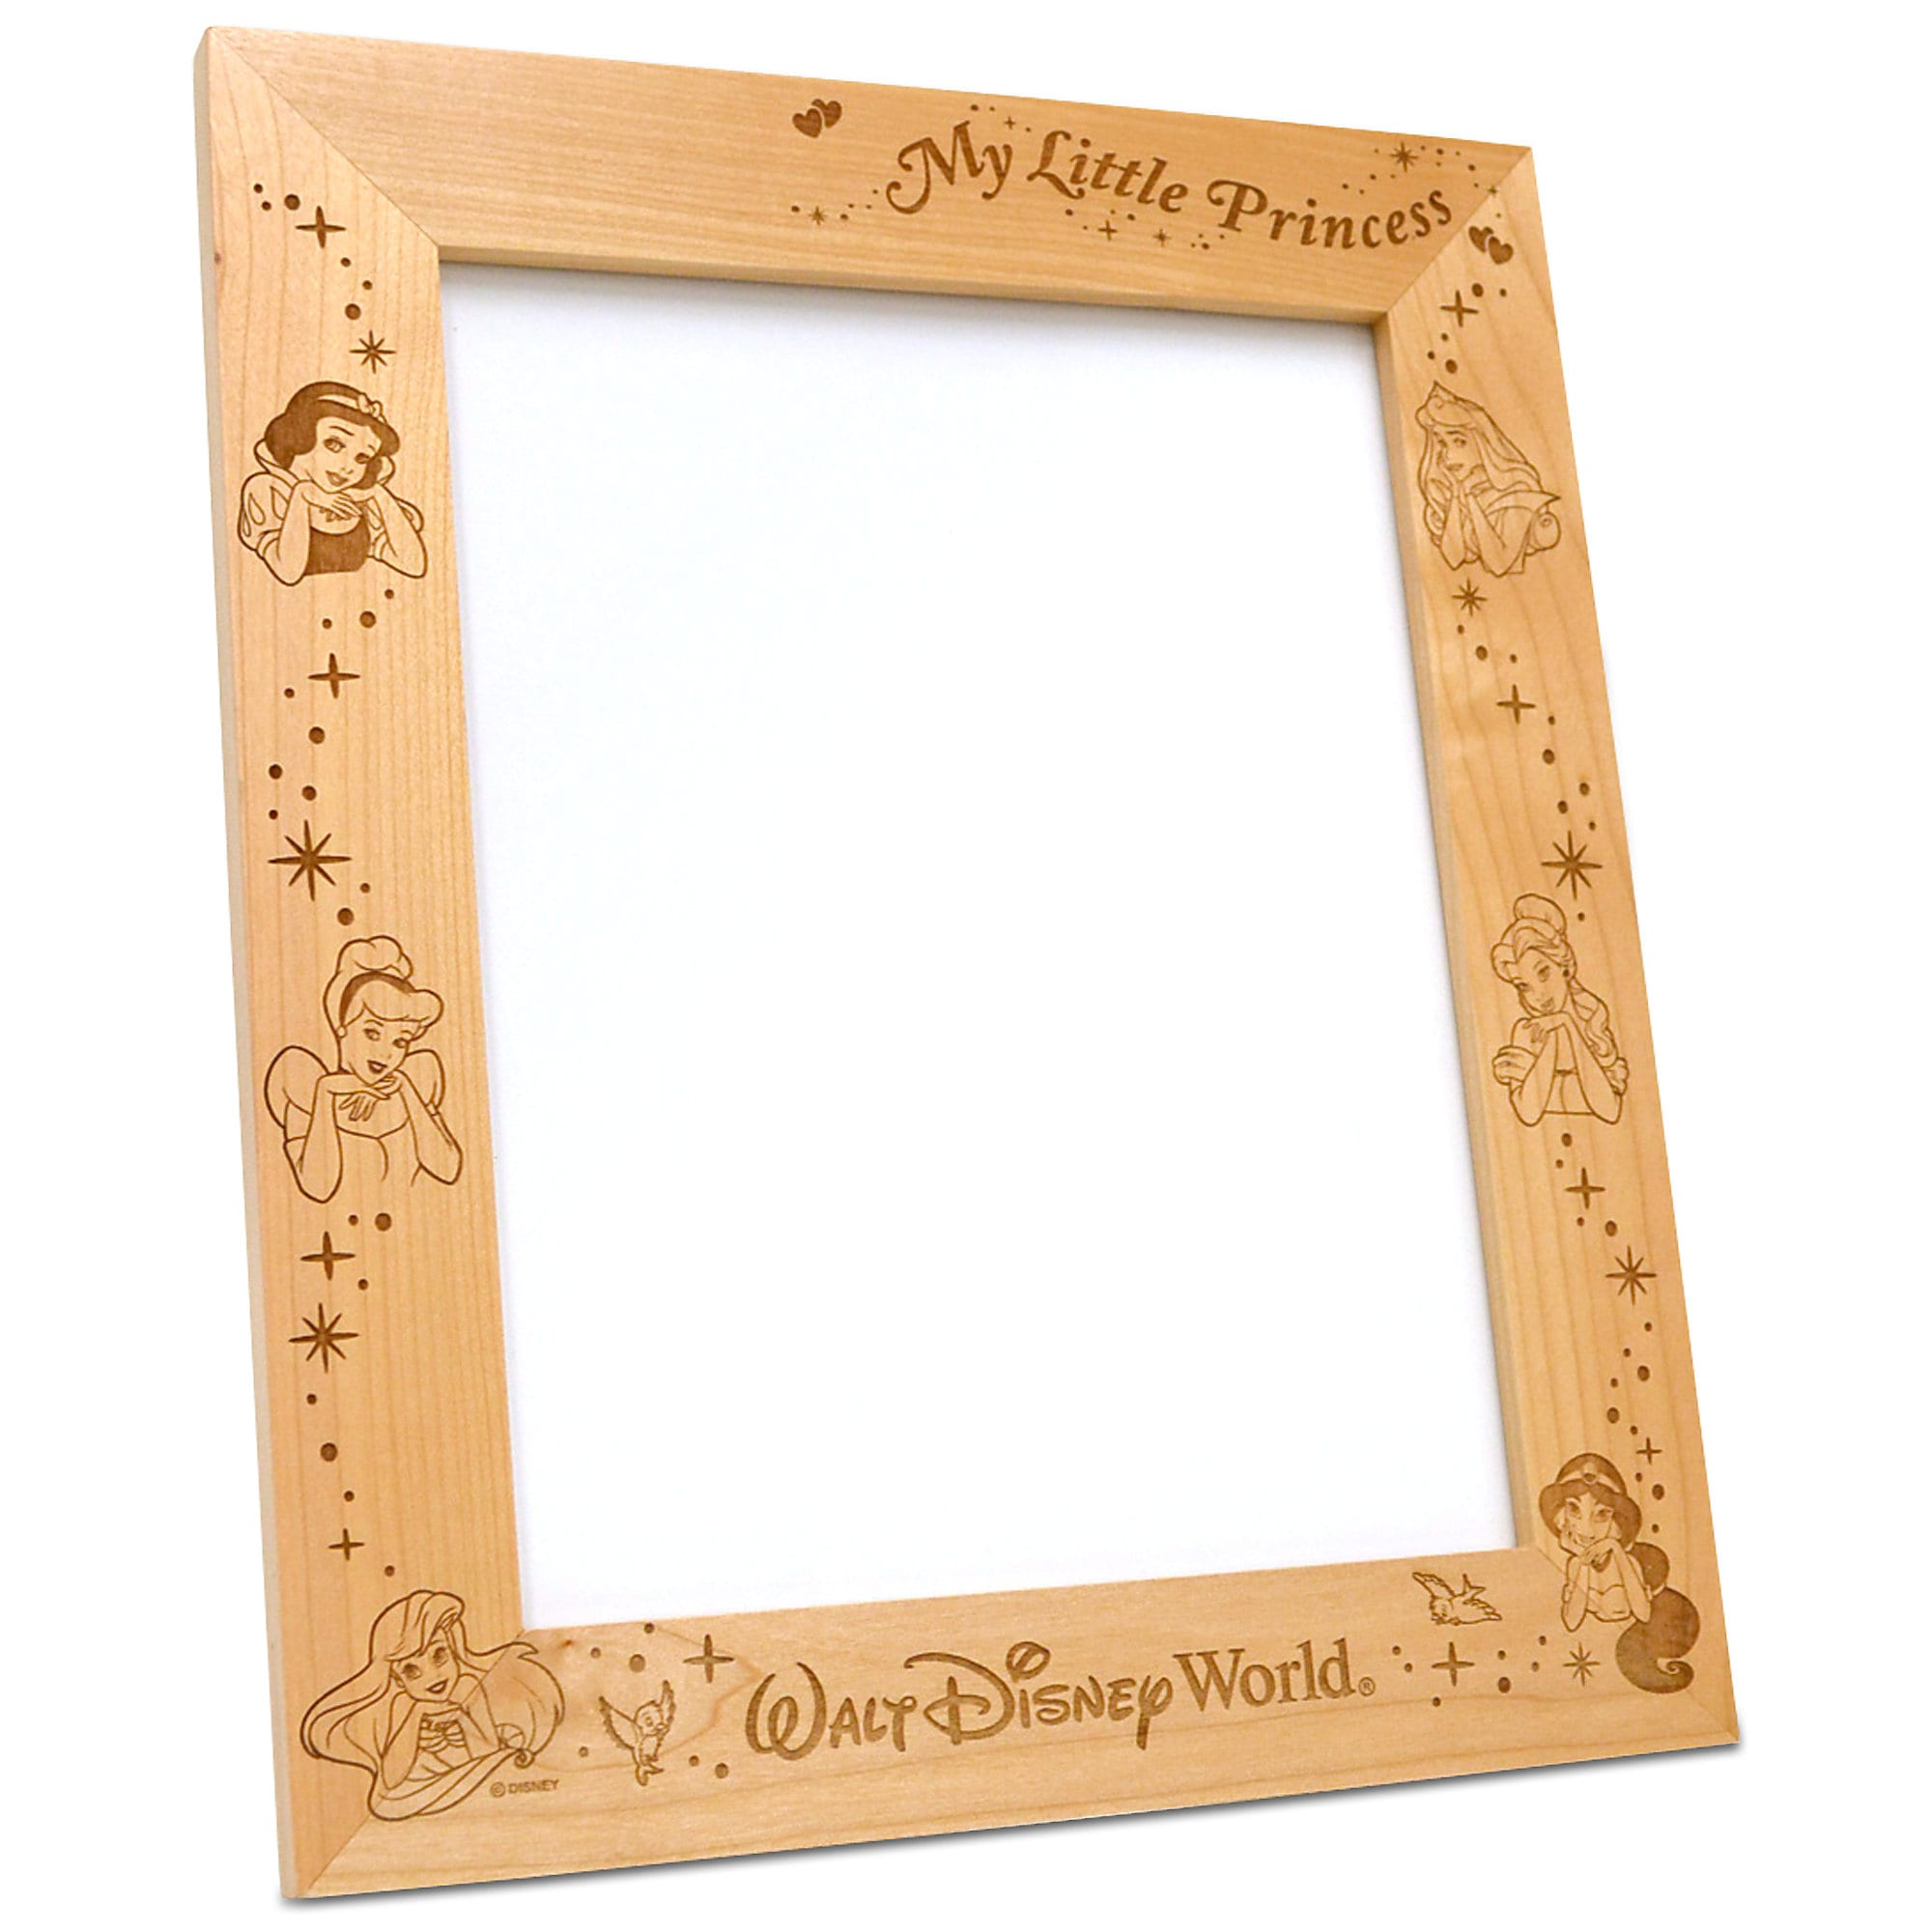 Disney Princess 8'' x 10'' Frame by Arribas - Personalizable